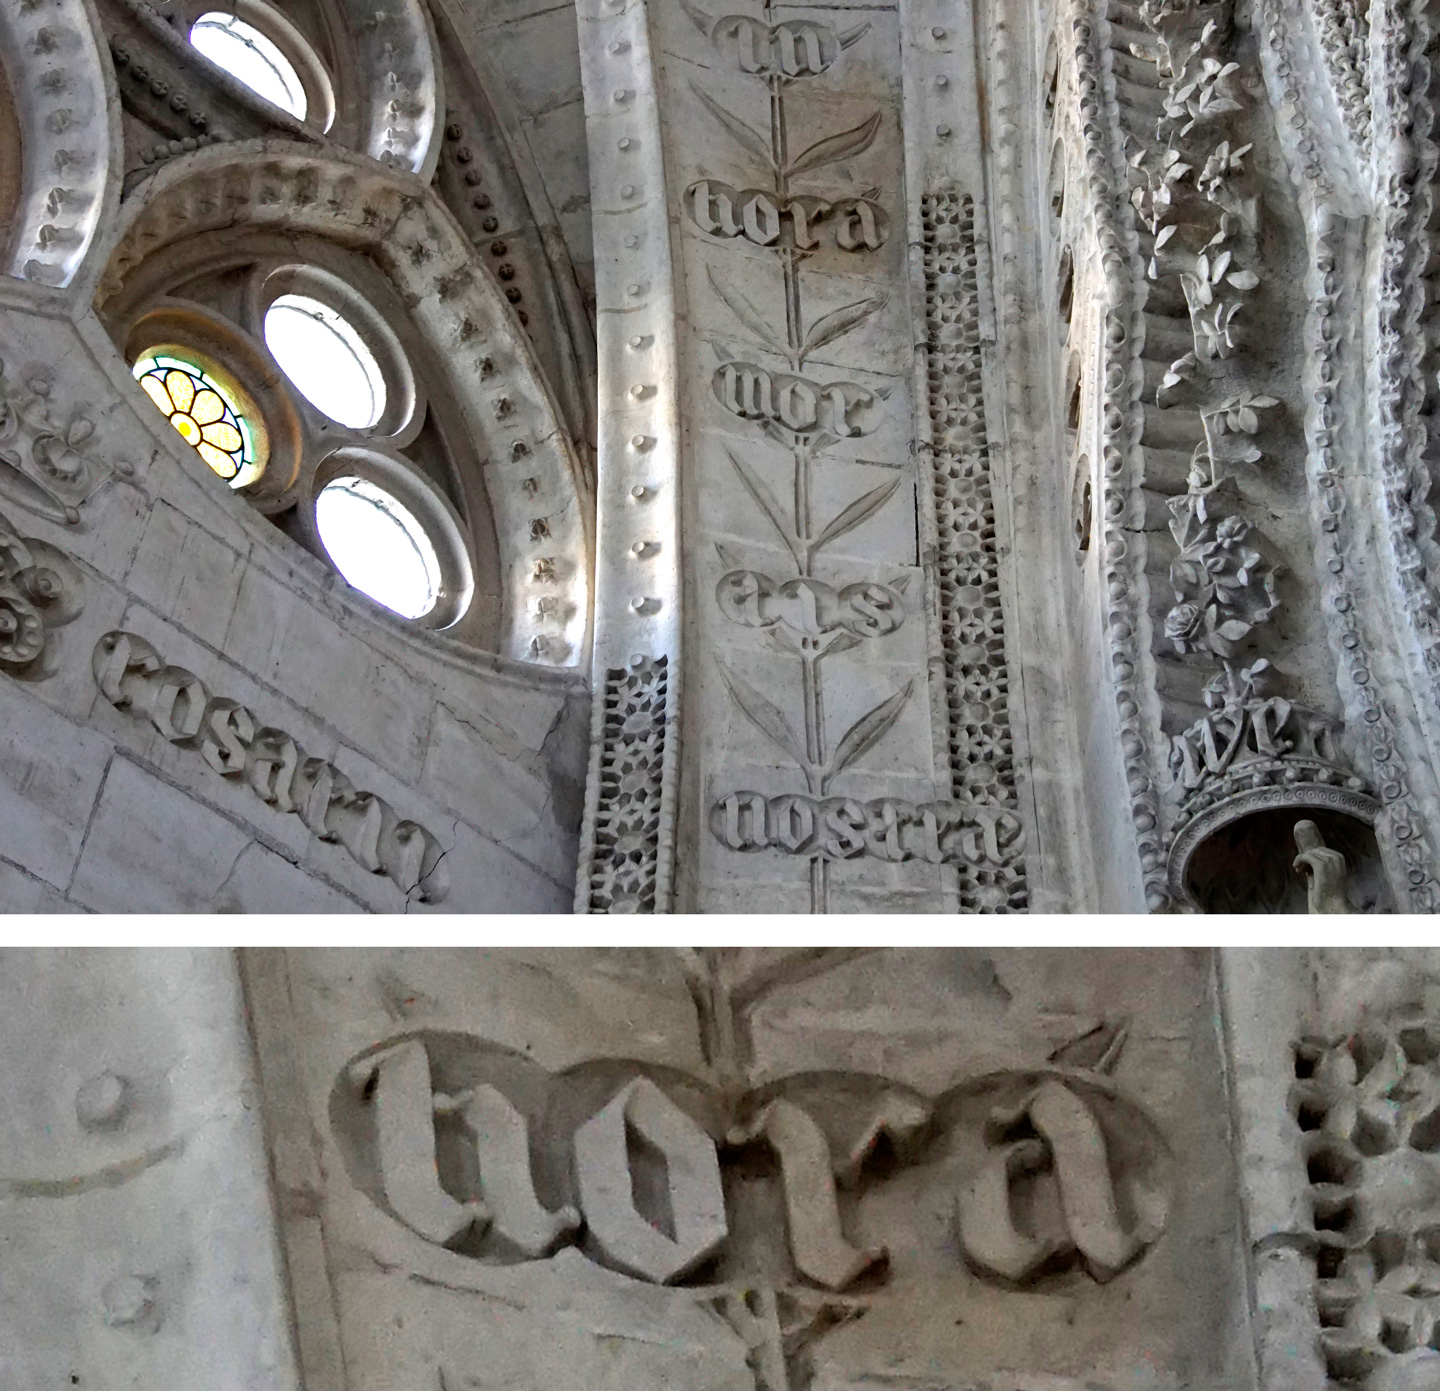 Stoic textura blackletter in the Rosary Portal